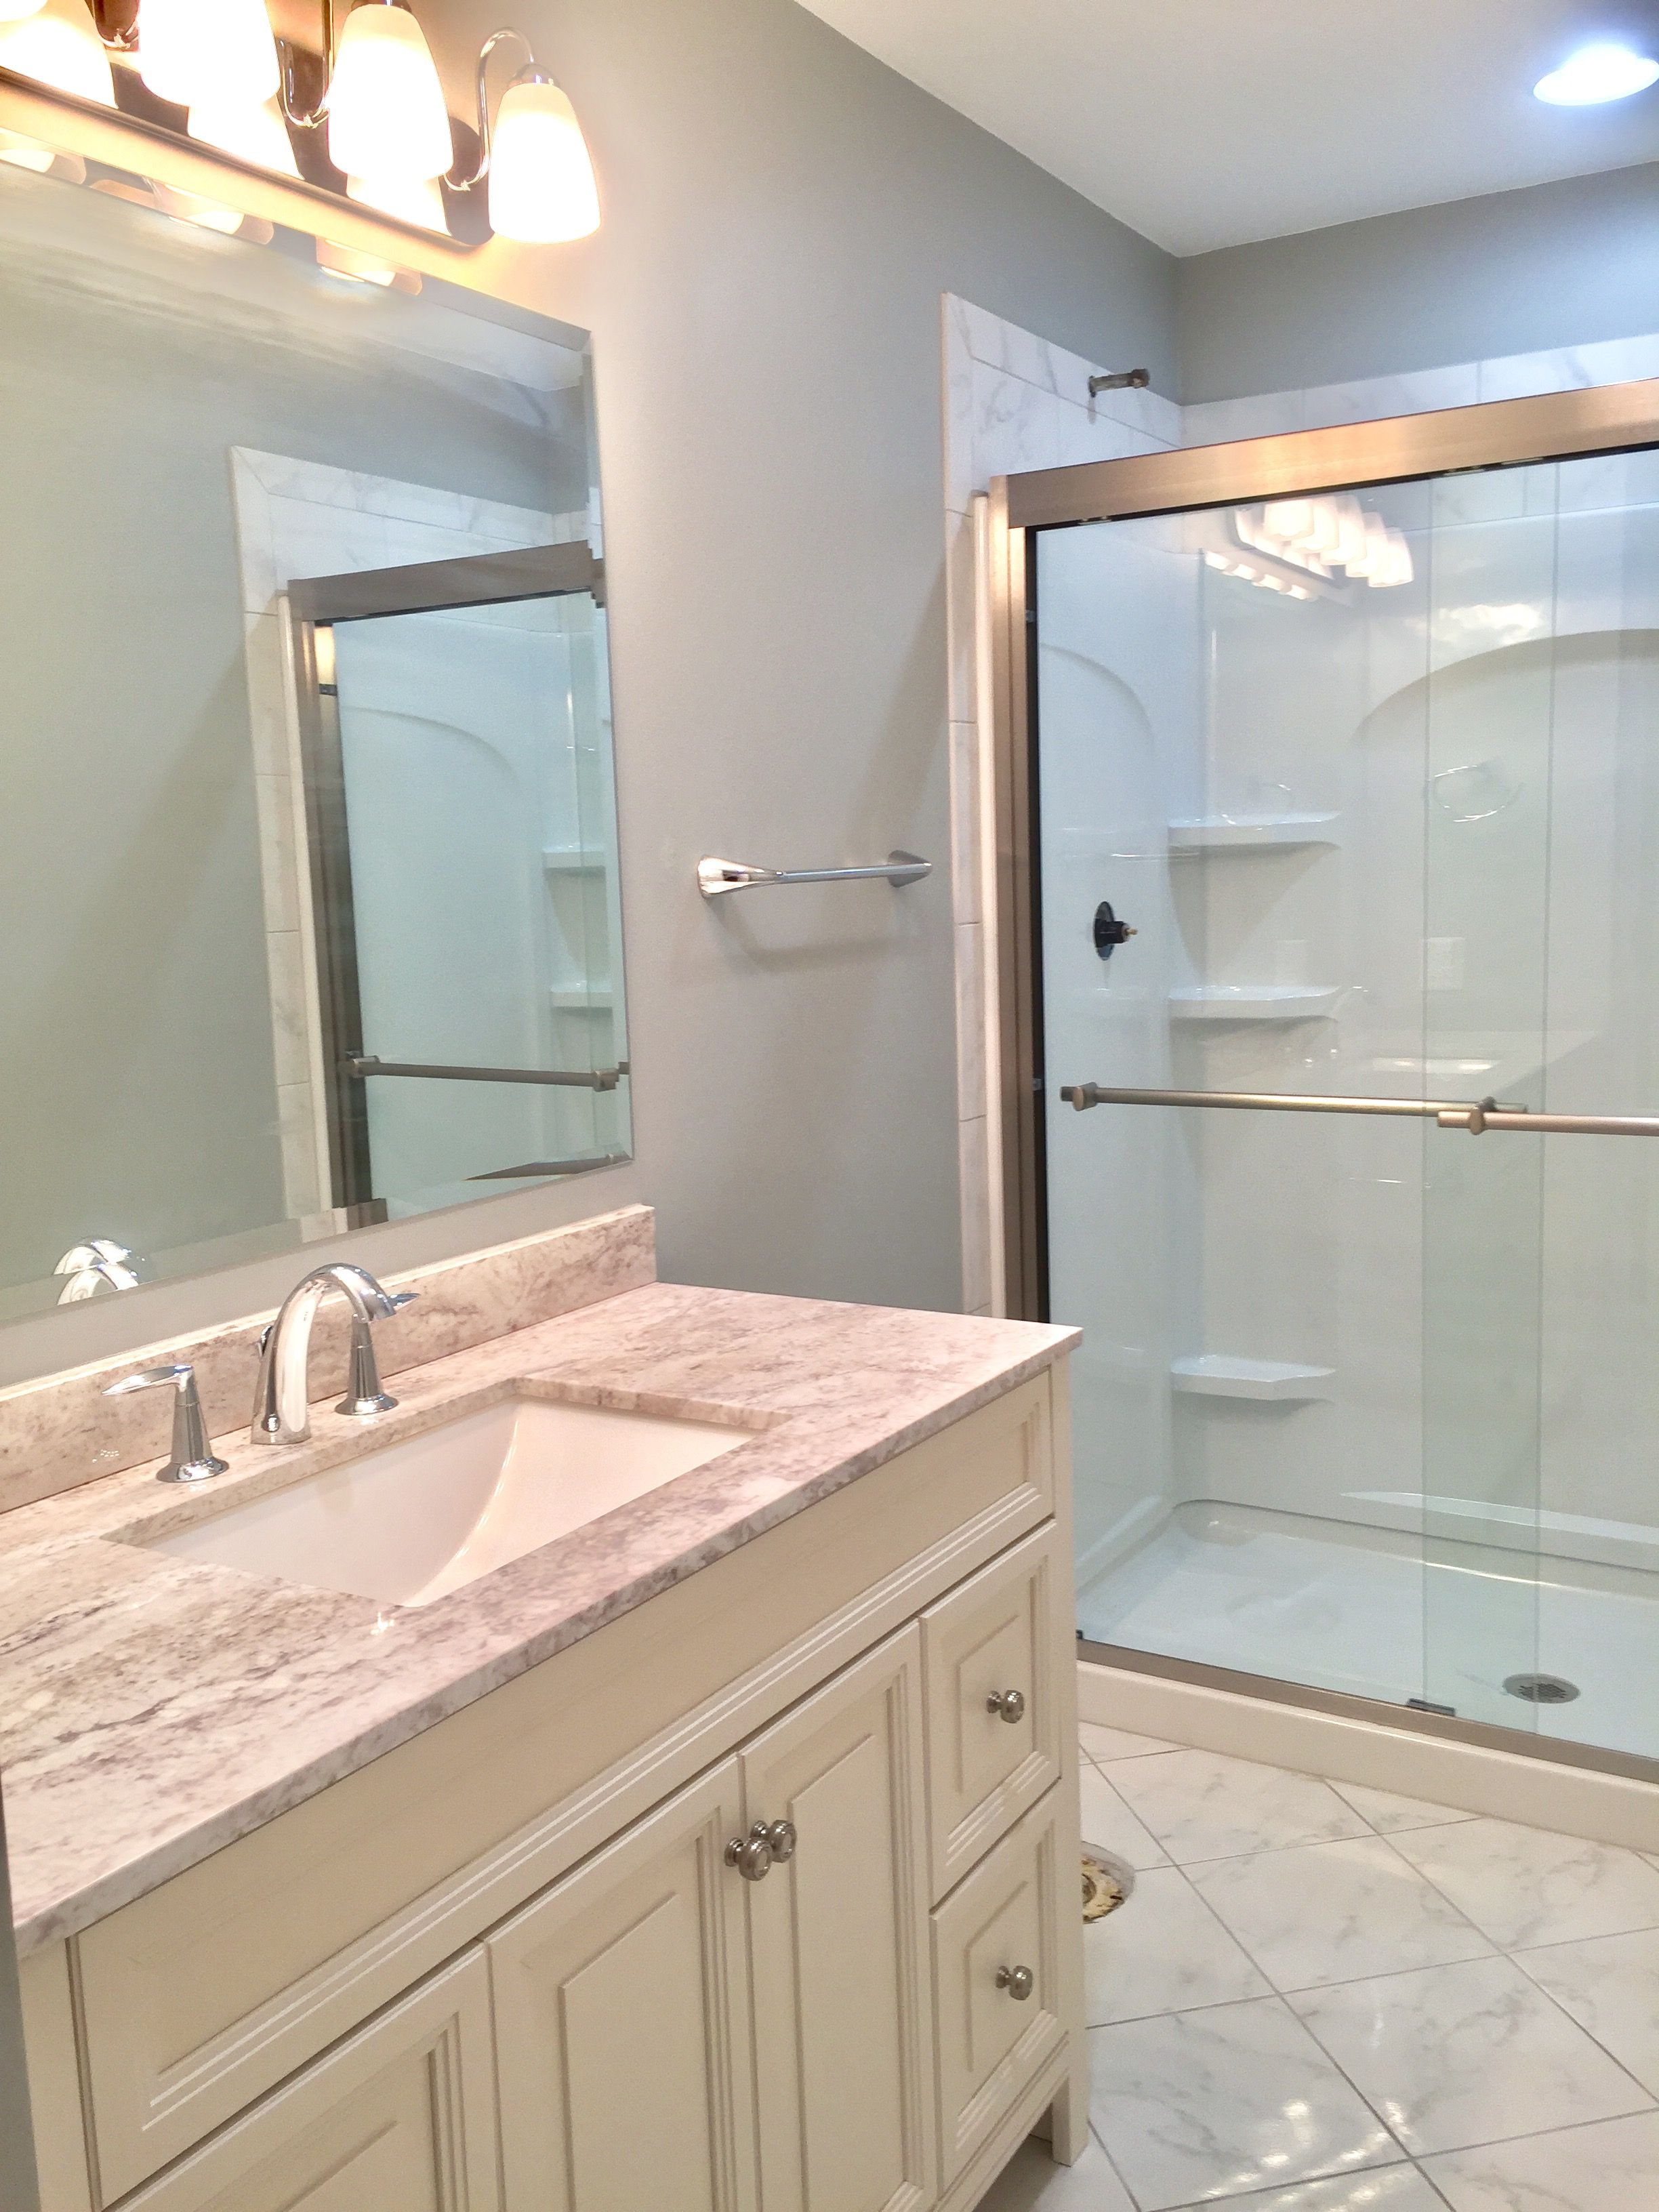 Another Bathroom Remodel By Buell Construction LLC Kenosha - Bathroom remodel kenosha